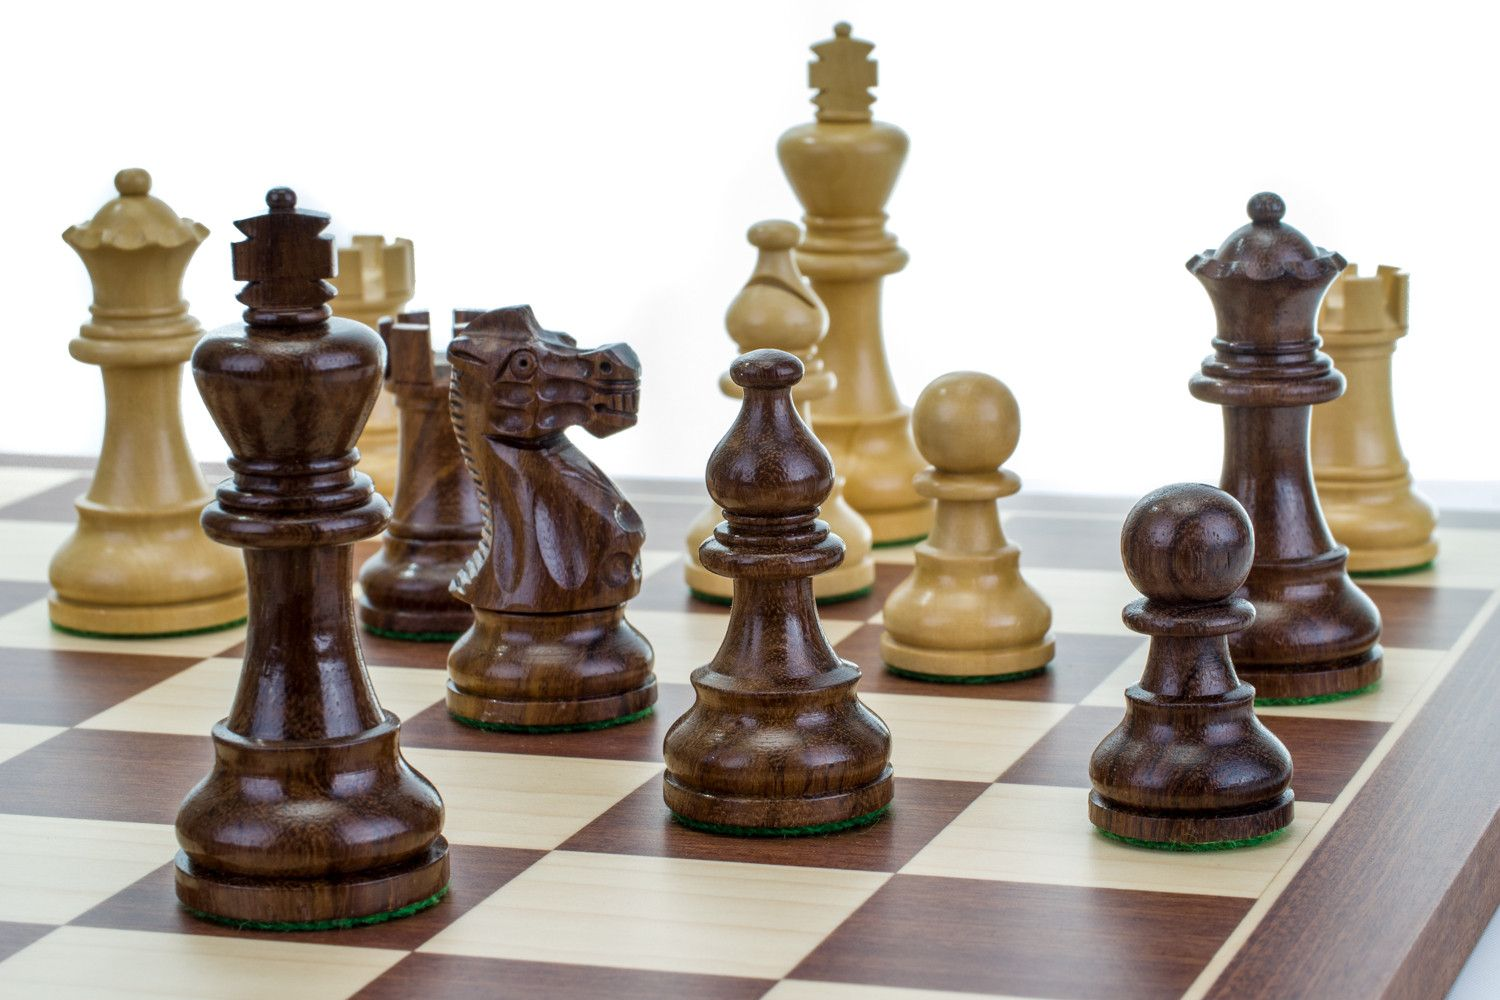 hindu singles in staunton Chess pieces from the house of staunton the house of staunton manufactures the world's finest chess pieces we offer chess pieces of all types and for all budgets.